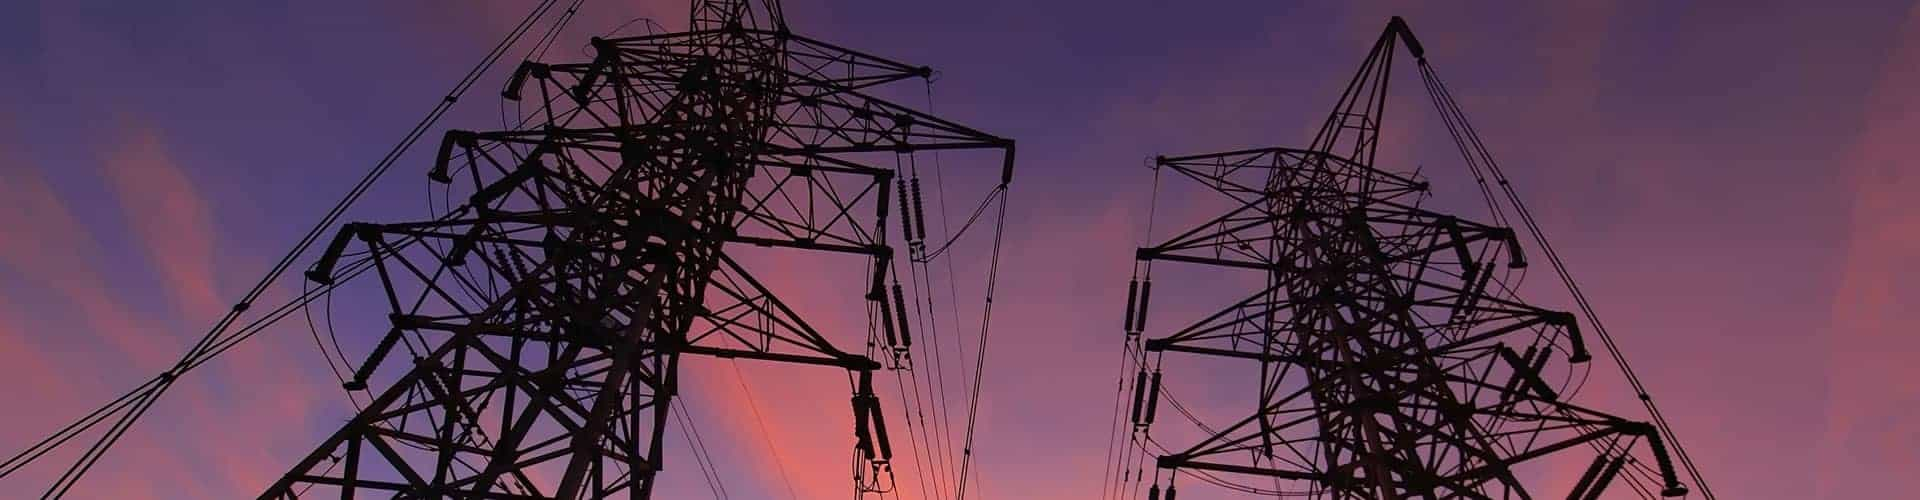 Electrical transmission towers. VIZIYA serves the Utilities market.